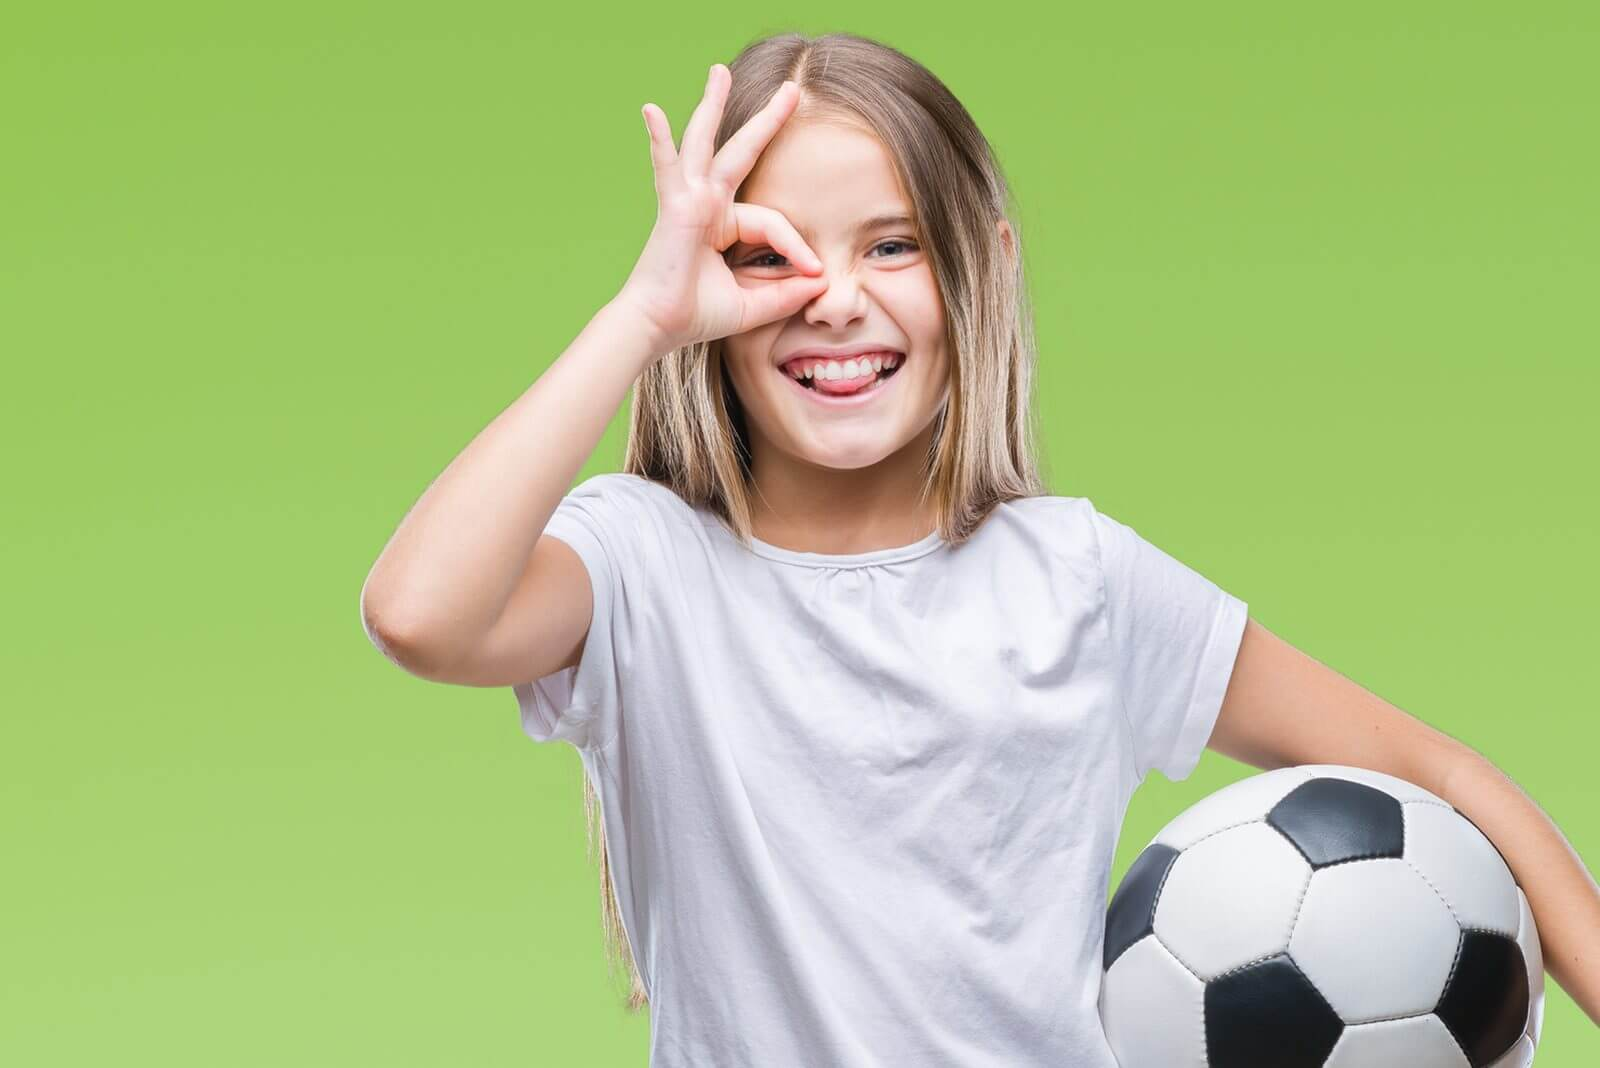 girl with soccer ball 1